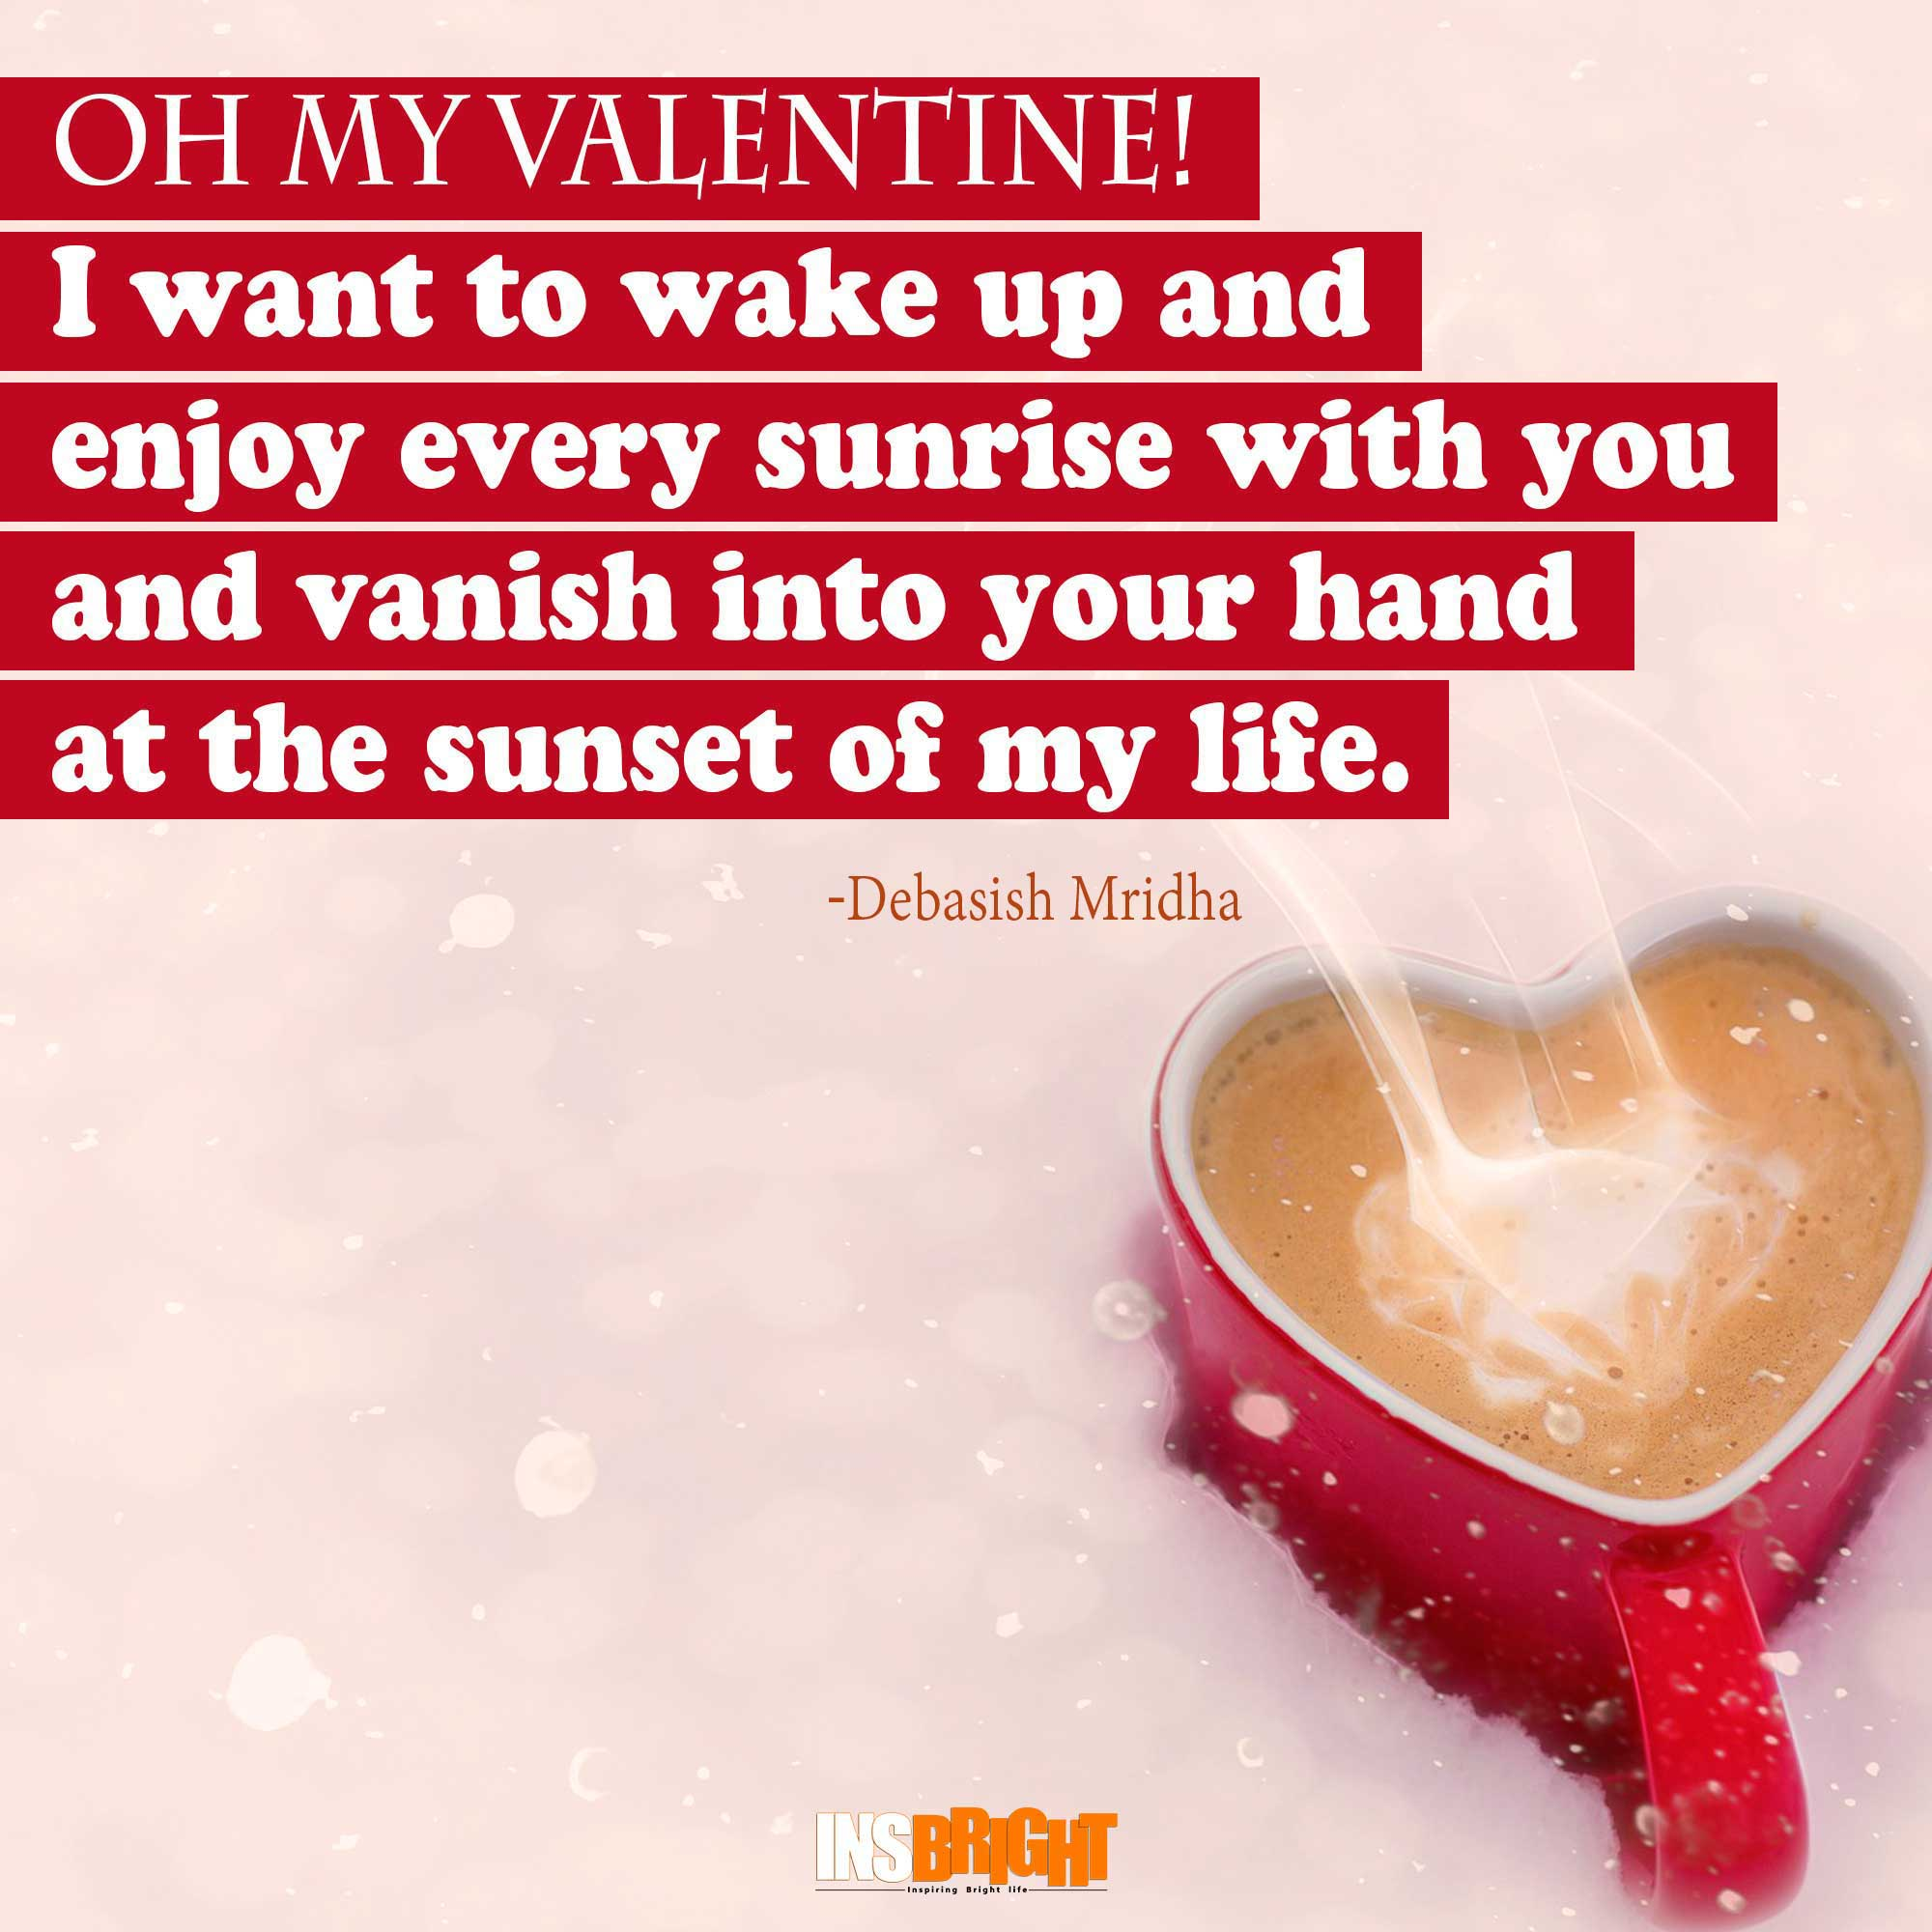 Cute happy valentines day quotes with images for him or her or oh my valentine quotes voltagebd Choice Image